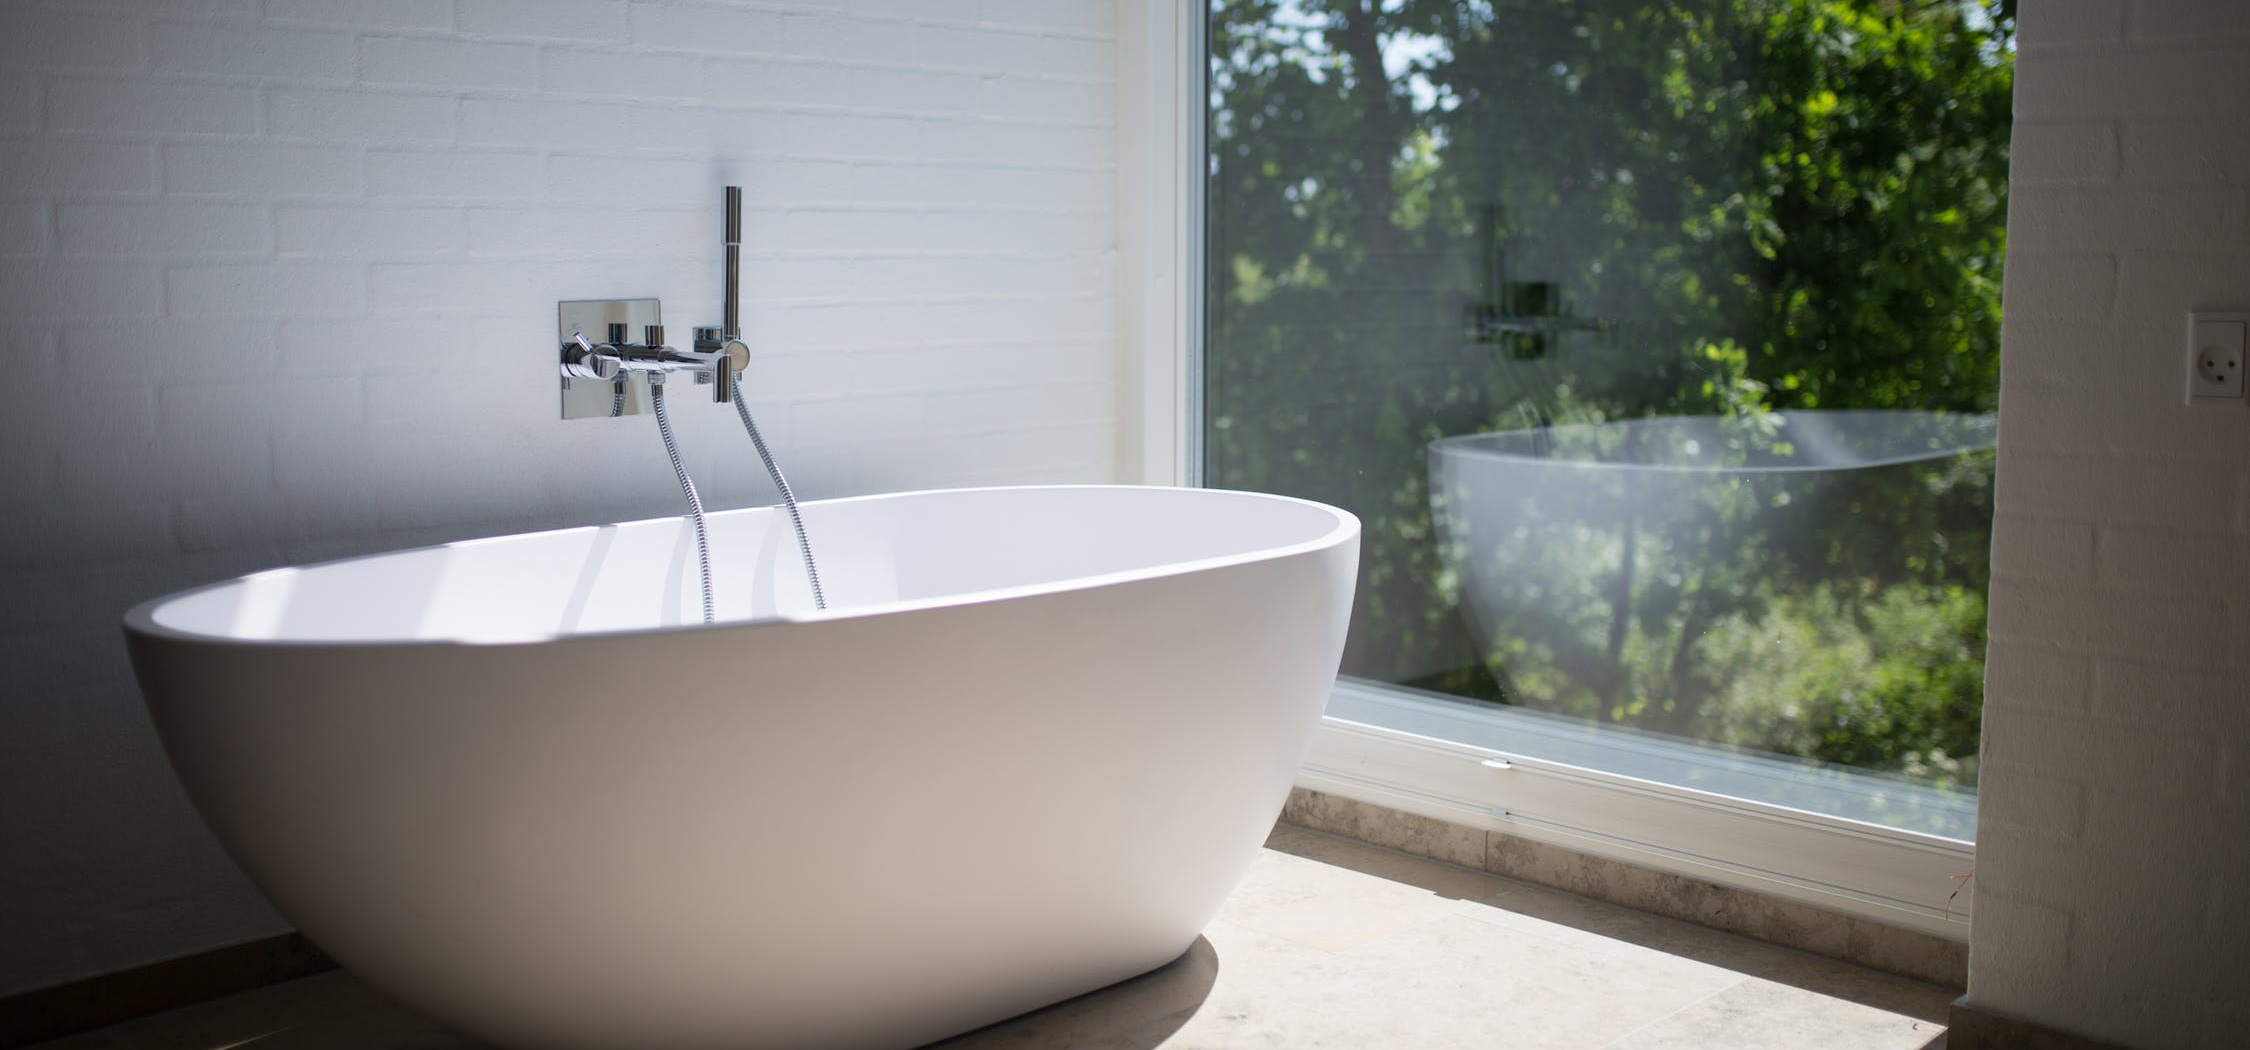 5-important-details-that-make-a-great-bathroom-1.jpeg